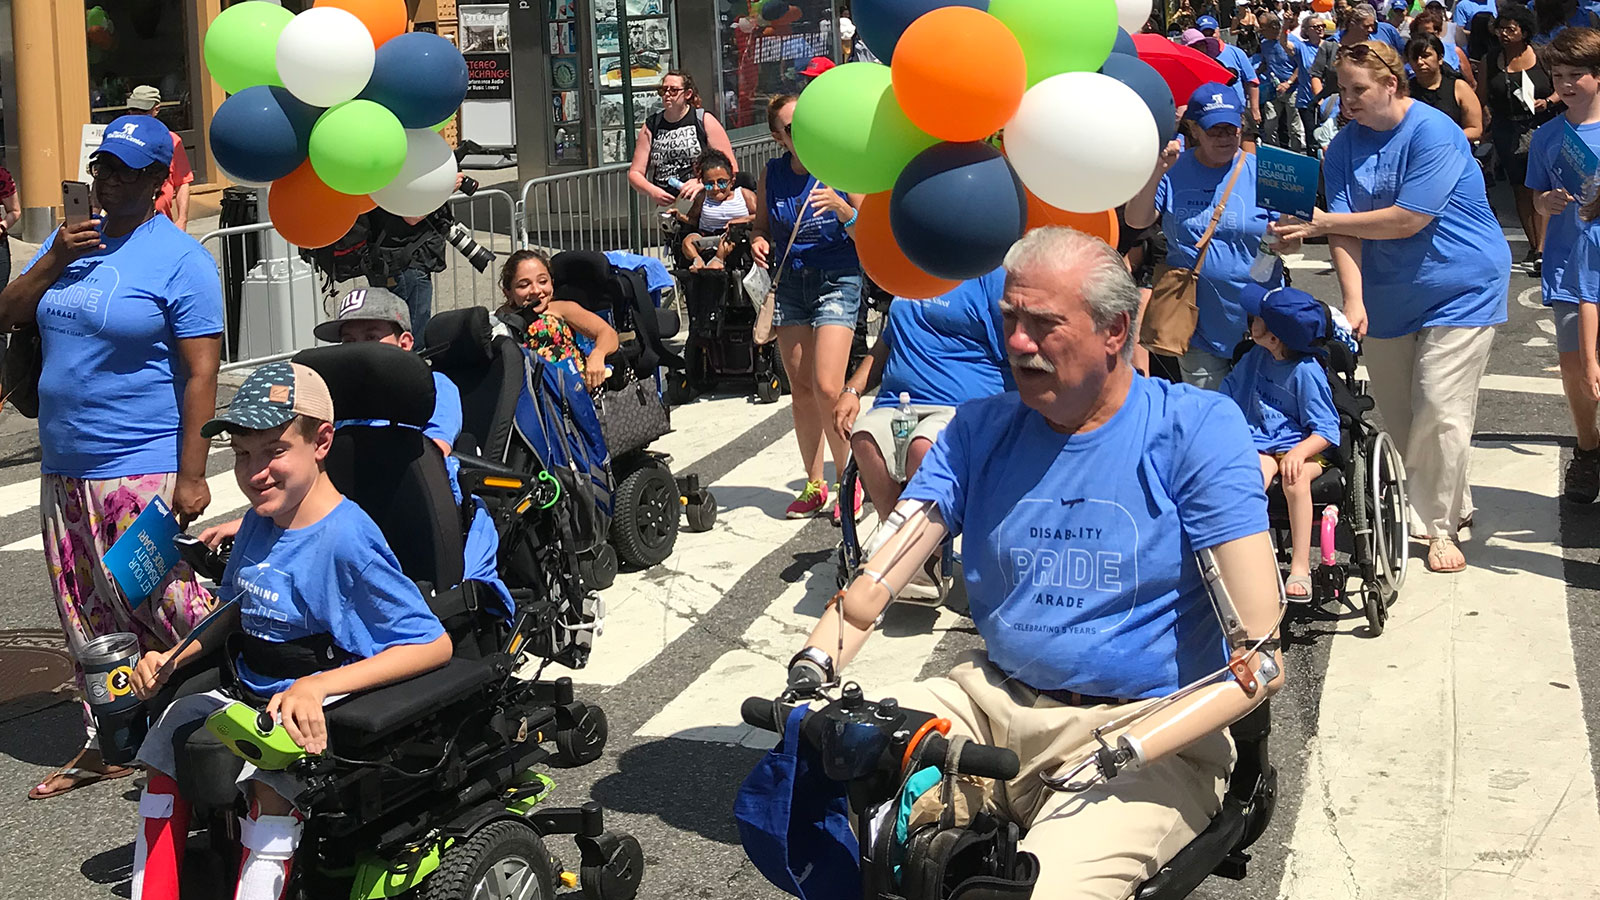 People-with-disabilities-march-in-the-disability-pride-parade-in-NYC-in-July-2019